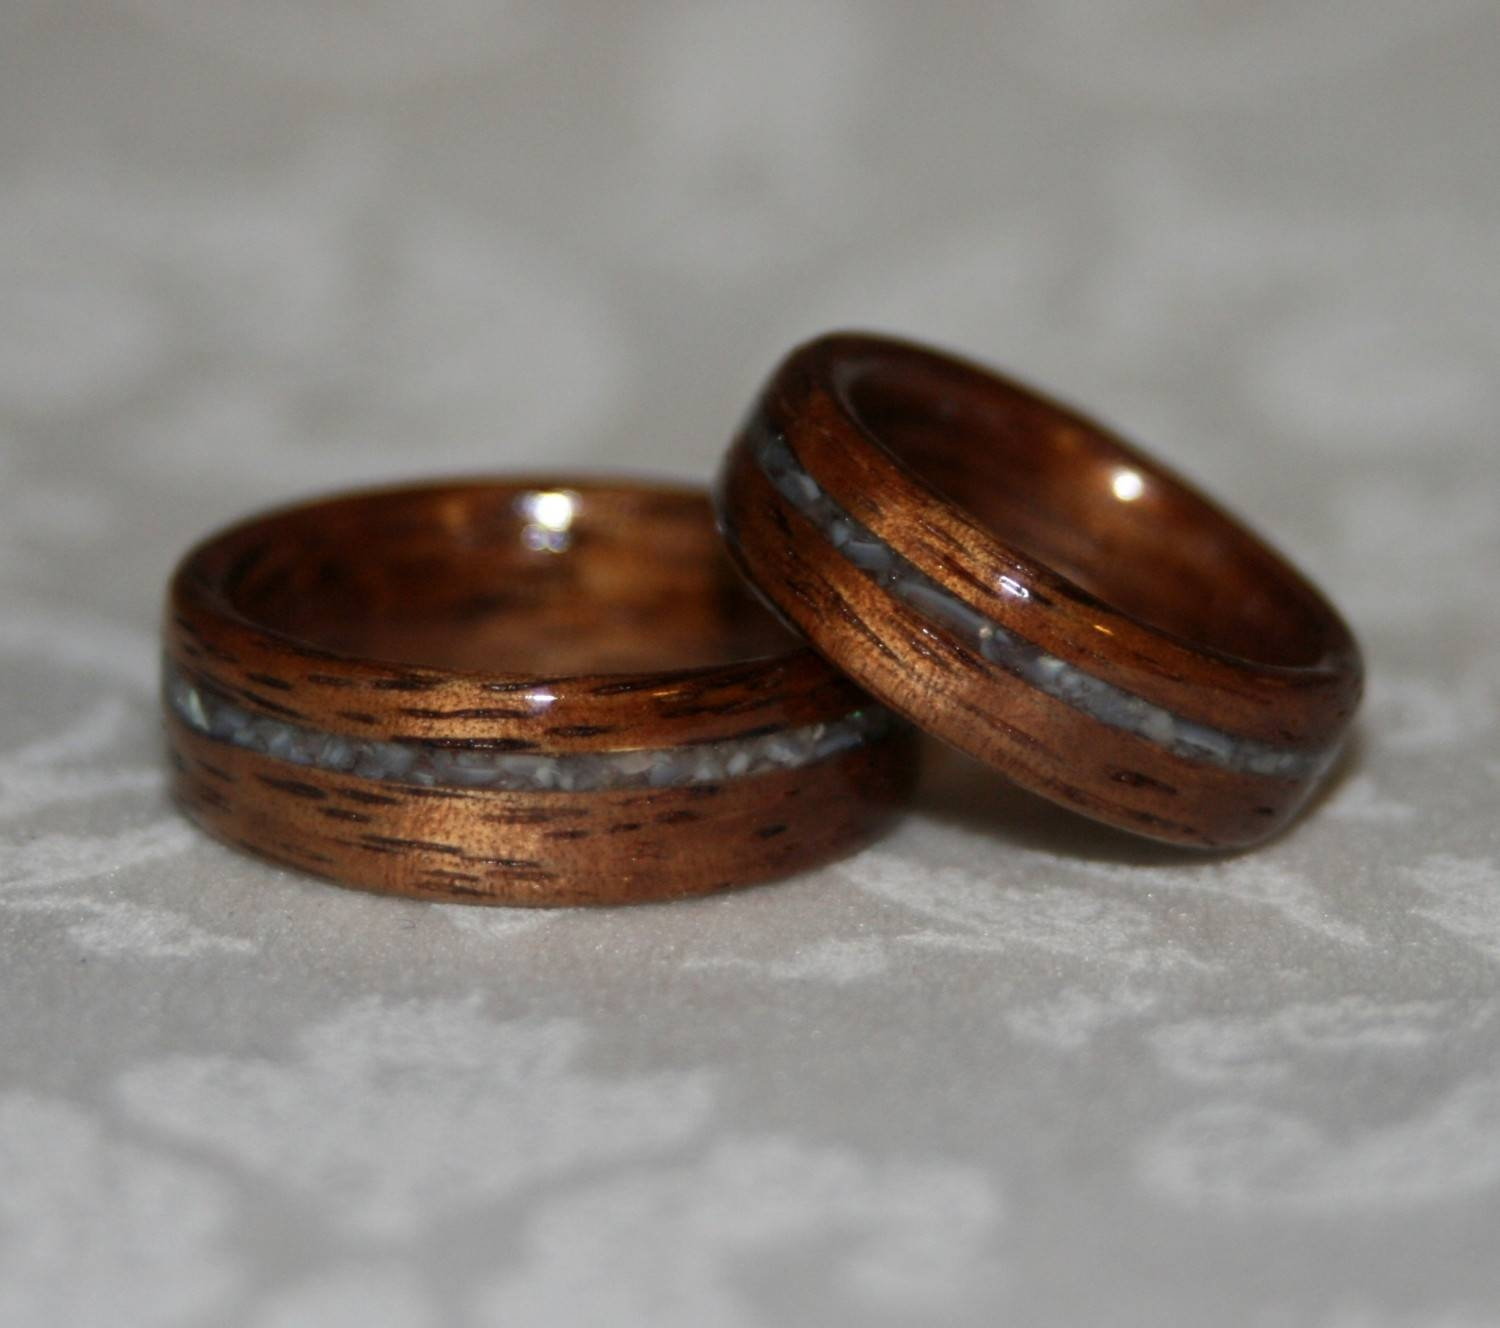 Wooden Wedding Rings — Criolla Brithday & Wedding Pertaining To Wood Inlay Men's Wedding Bands (View 5 of 15)